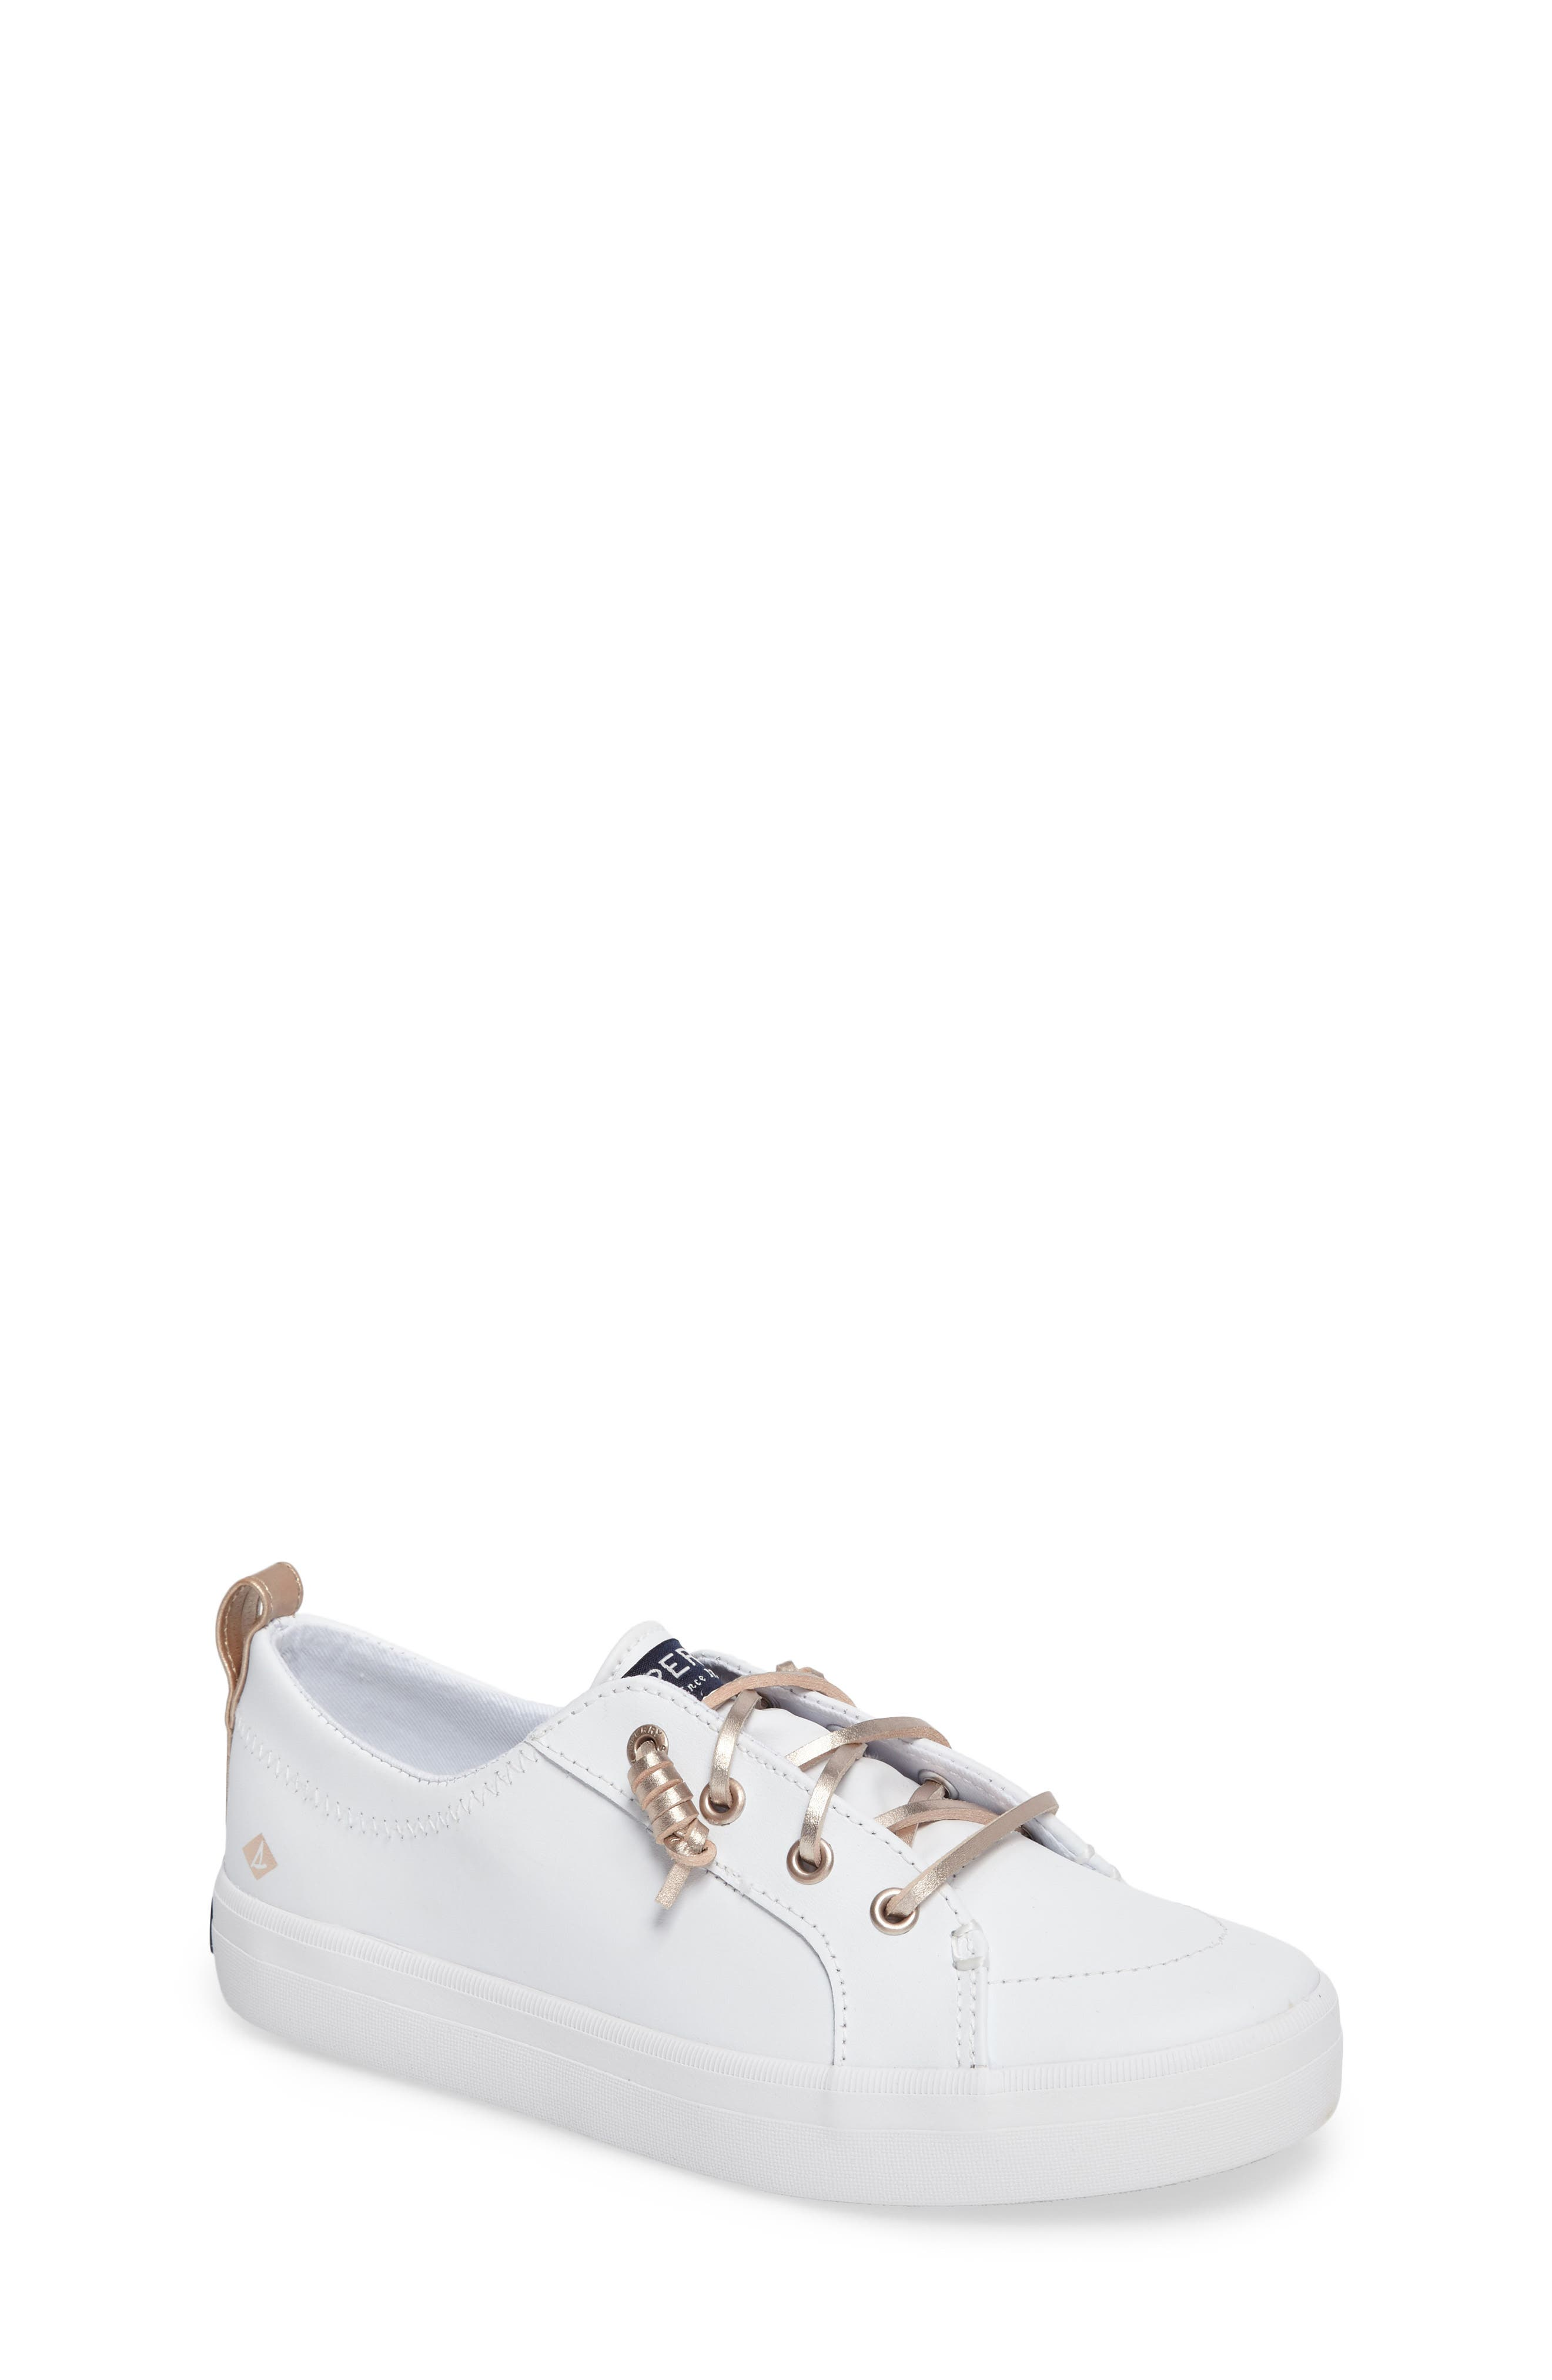 Sperry Crest Vibe Sneaker,                         Main,                         color, WHITE LEATHER